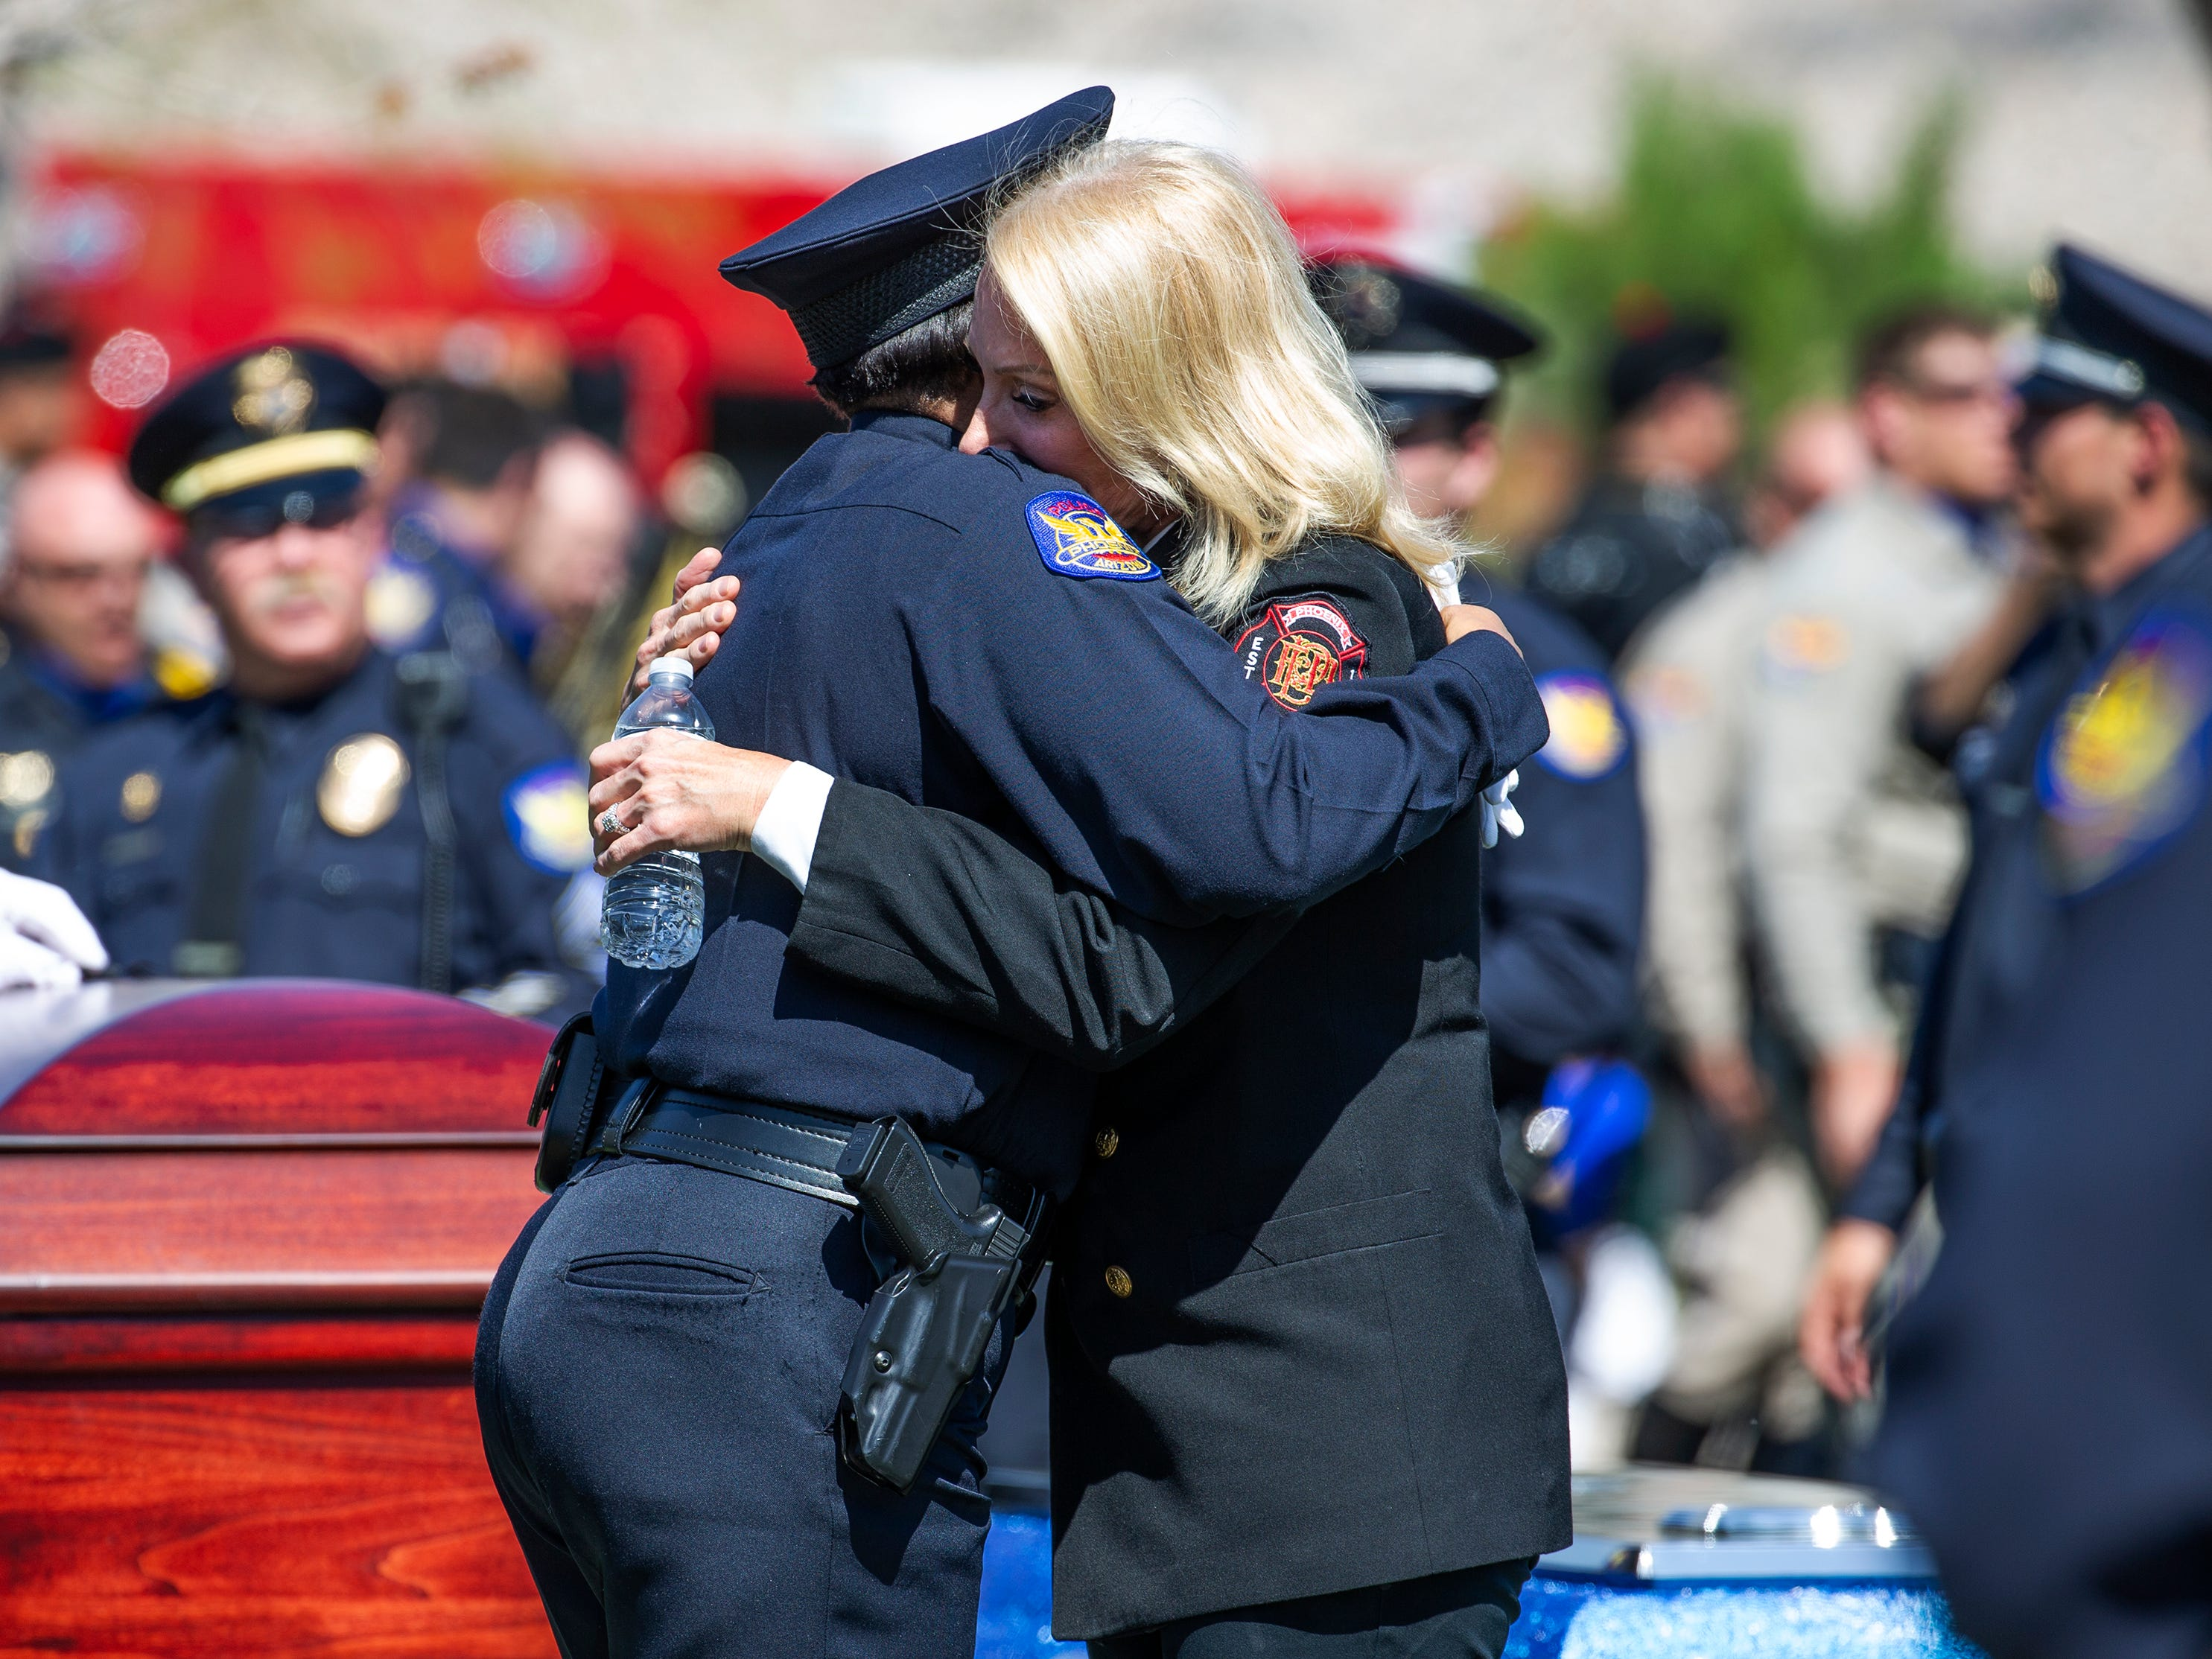 Phoenix Police Chief Jeri Williams (left) is hugged by Phoenix Fire Chief Kara Kalkbrenner after graveside services for Phoenix police Officer Paul Rutherford at Phoenix Memorial Cemetery March 28, 2019. Rutherford was killed while investigating the scene of an auto accident in Phoenix.